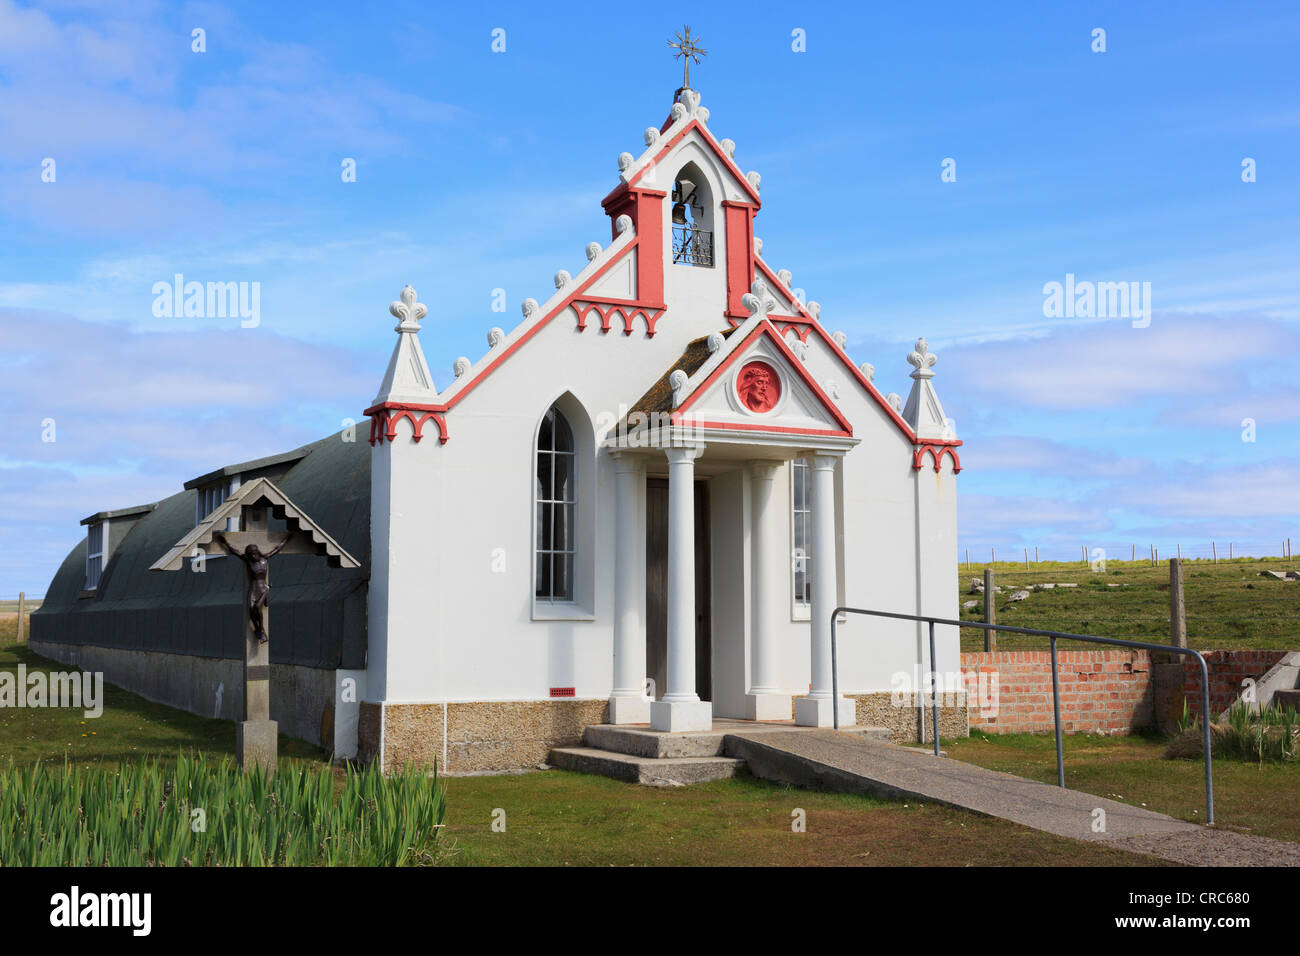 Italian Chapel built from 2 Nissen huts by Italian prisoners of world war II on Lamb Holm, Orkney Islands, Scotland, - Stock Image